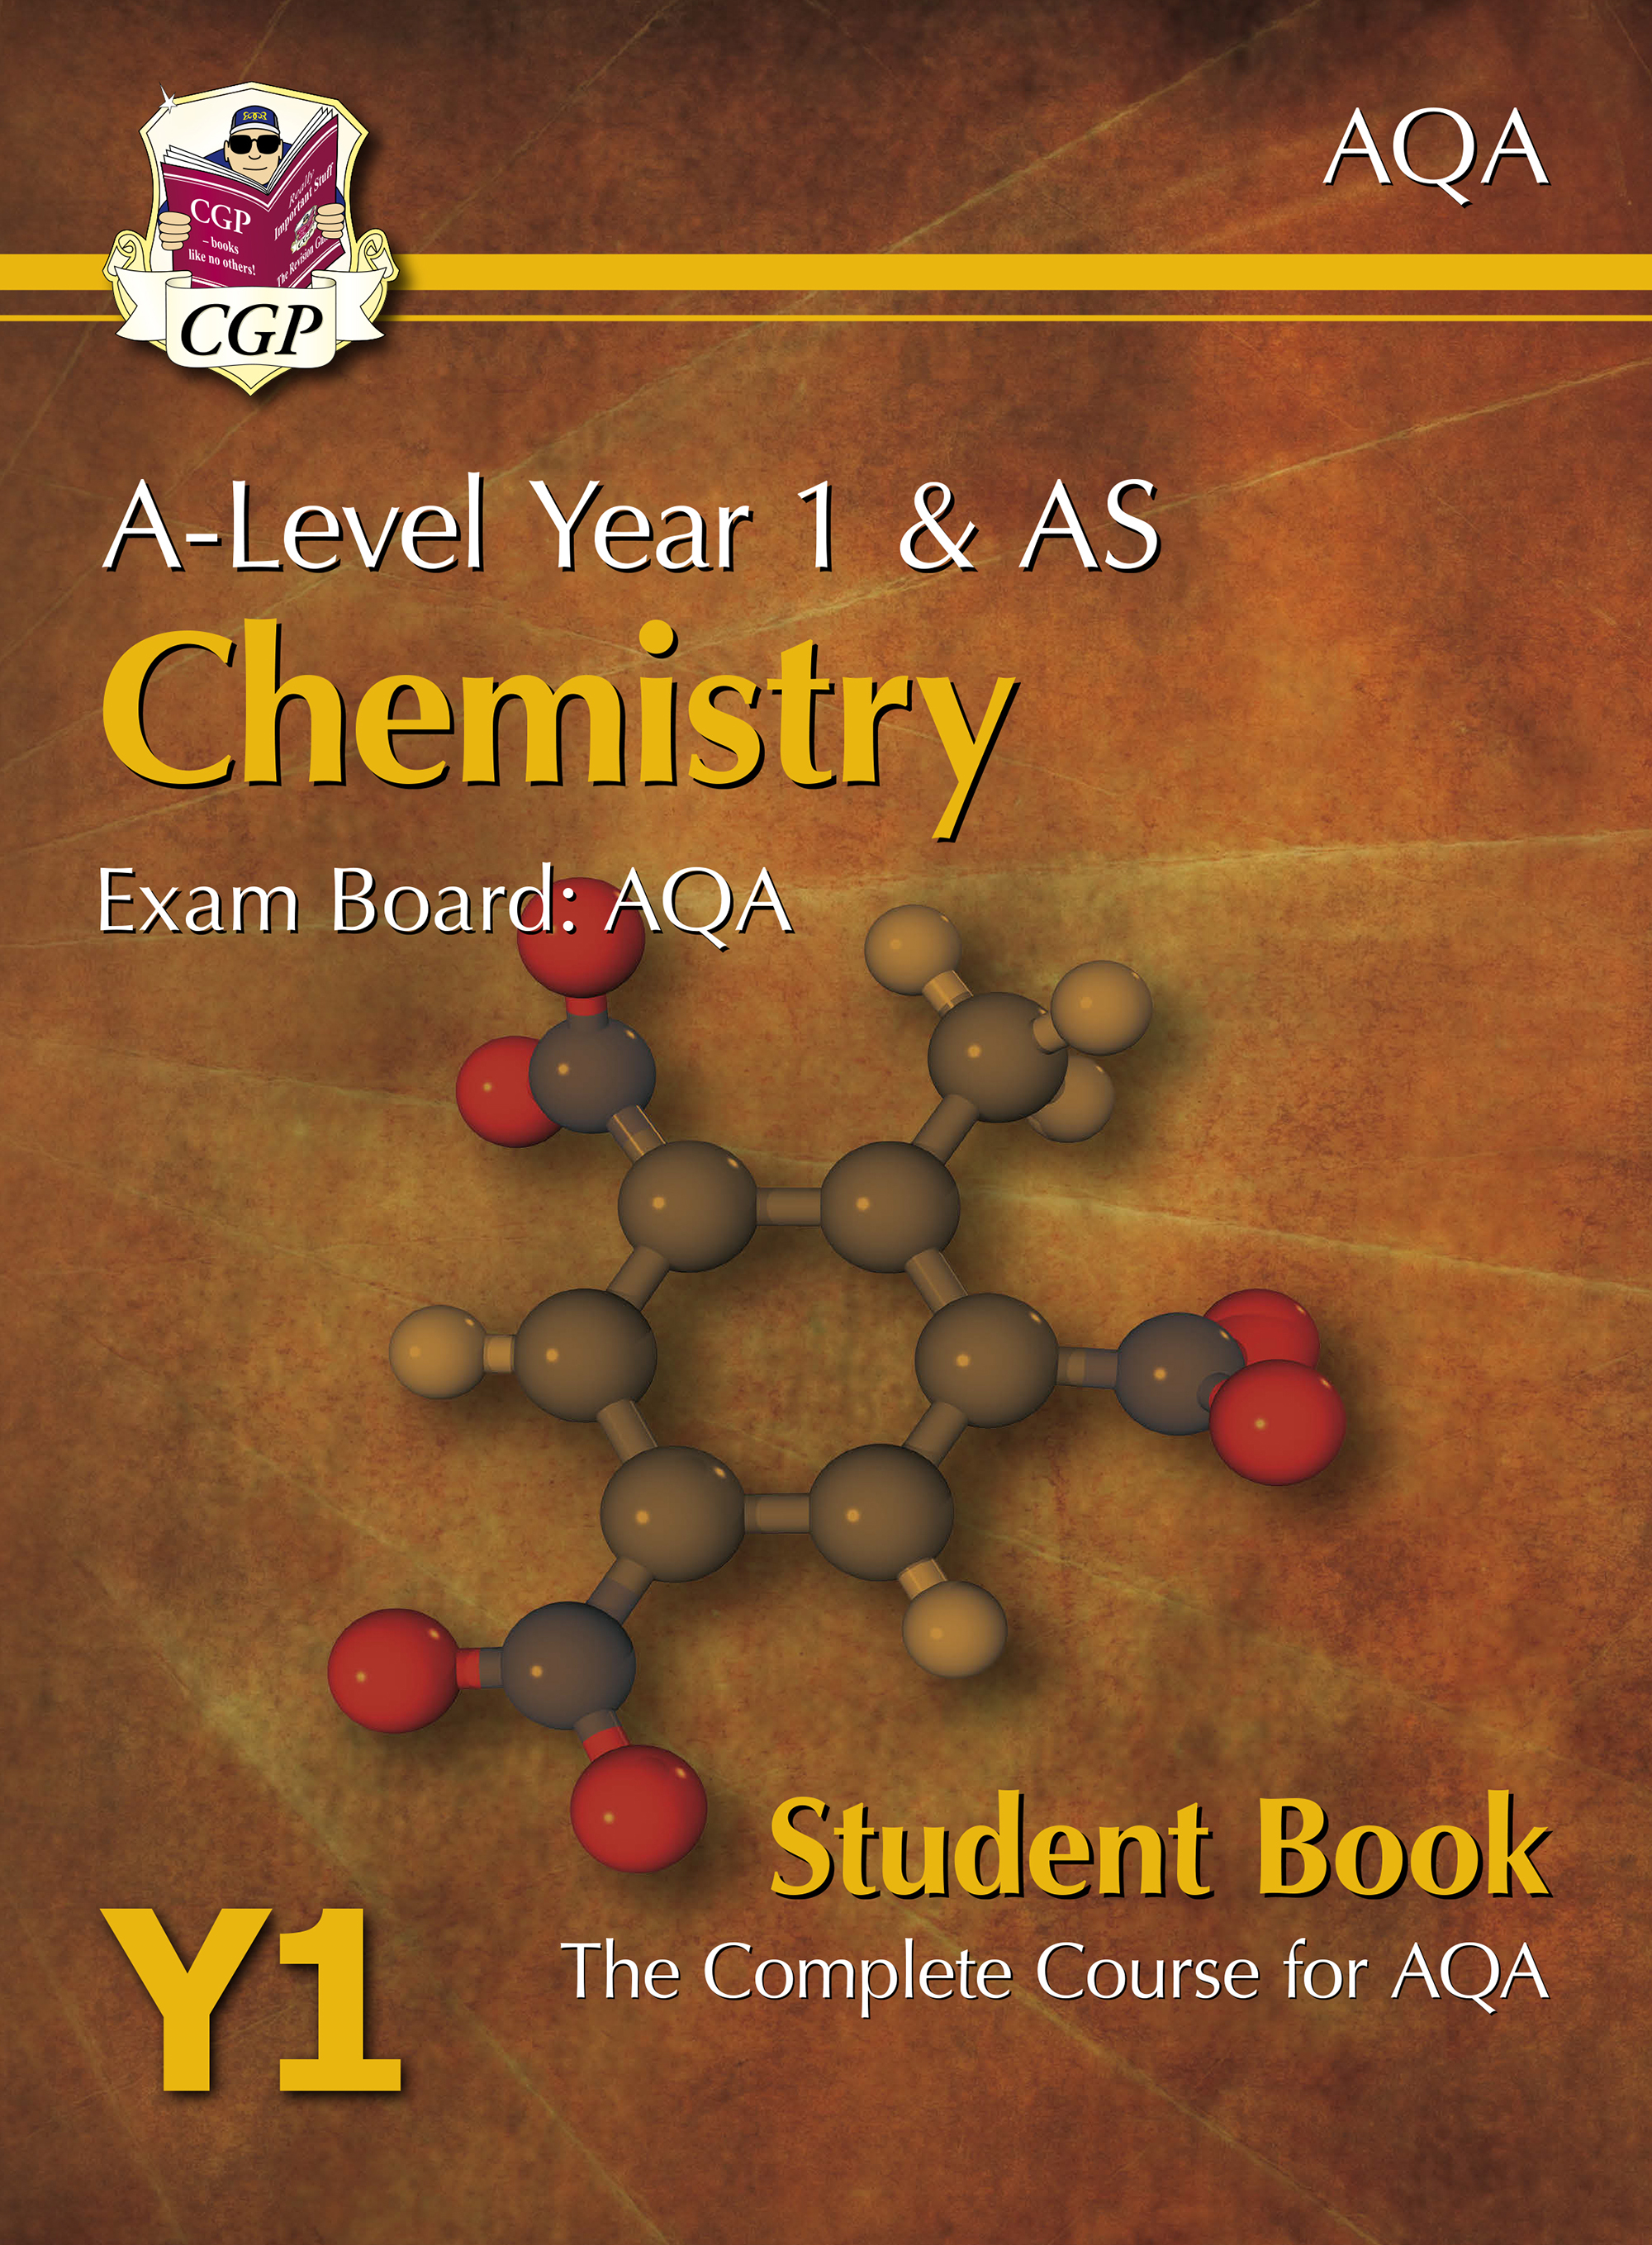 CATB53D - A-Level Chemistry for AQA: Year 1 & AS Student Book Online Edition